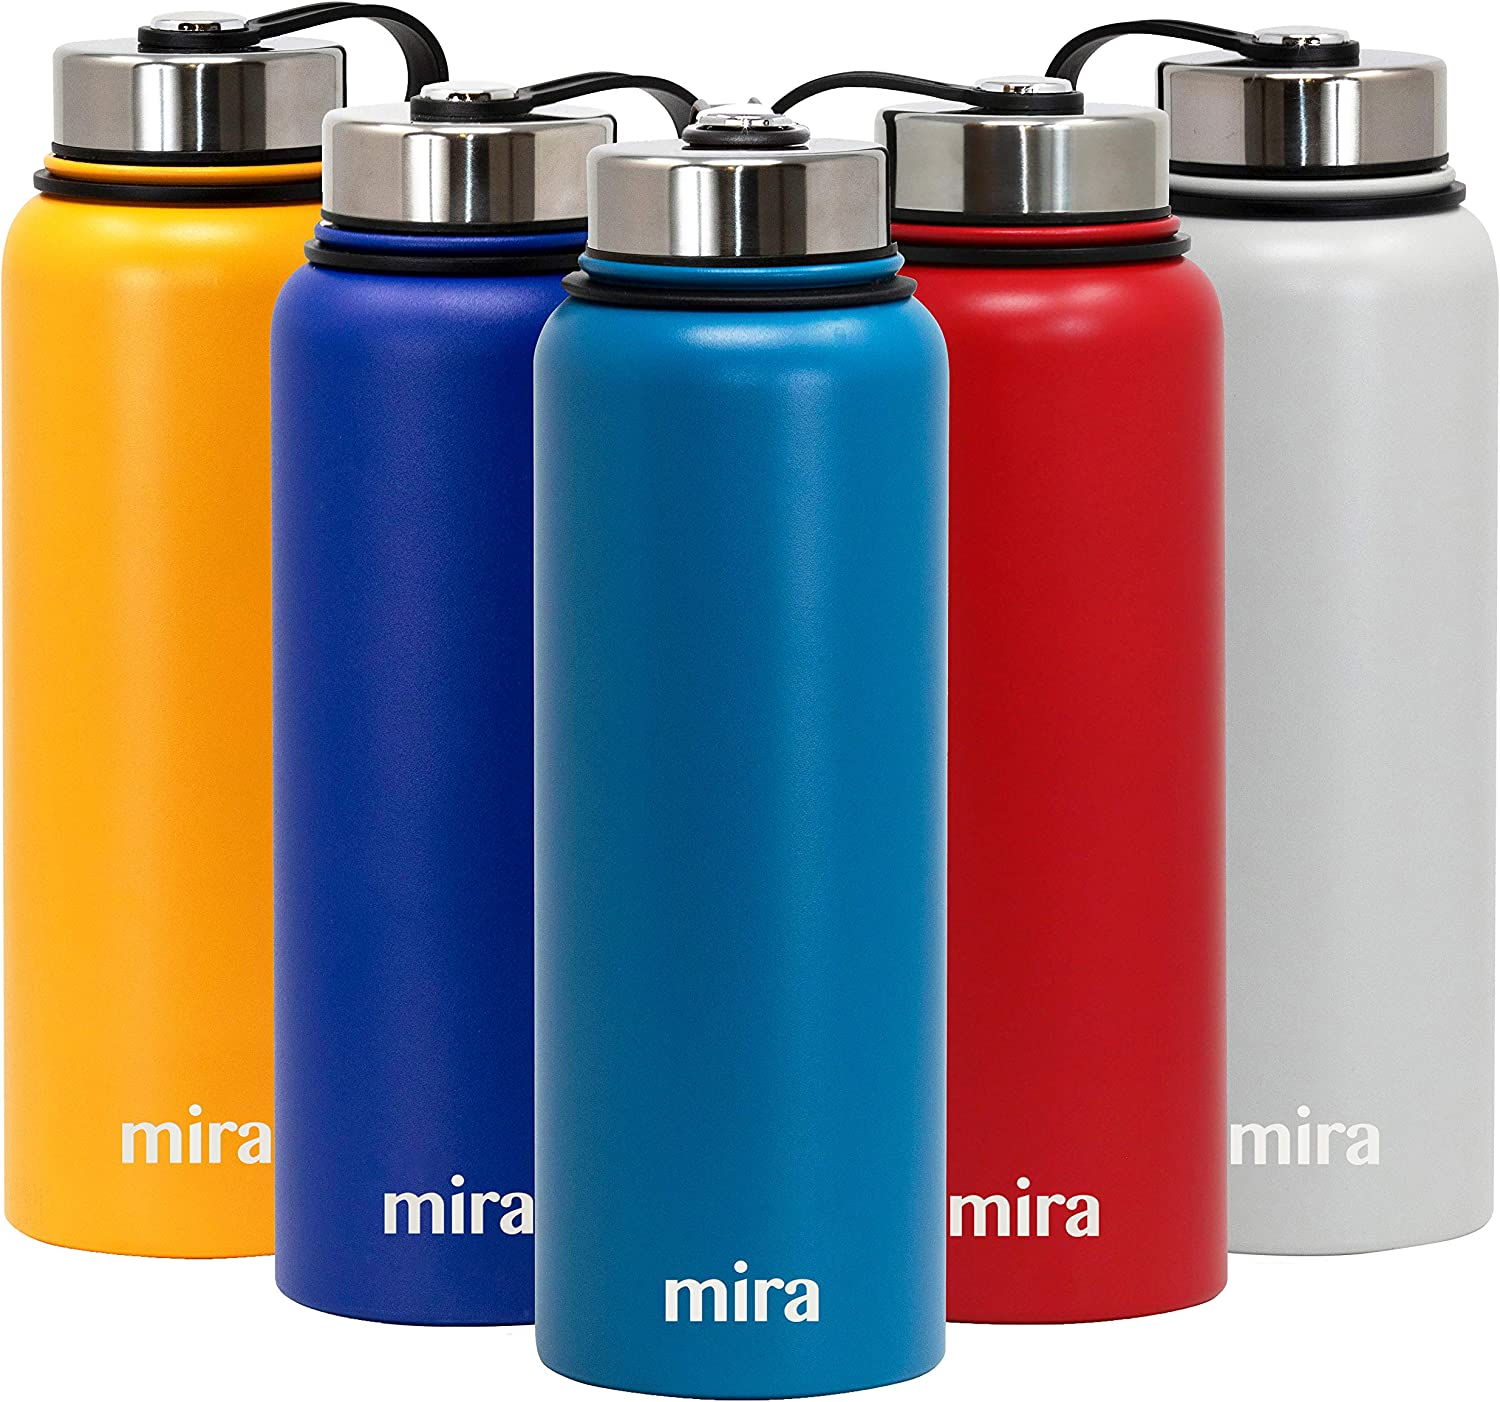 MIRA 40 oz Stainless Steel Vacuum Insulated Wide Mouth Water Bottle   Thermos Keeps Cold for 24 Hours, Hot for 12 Hours   Double Walled Powder Coated Travel Flask   Hawaiian blueee